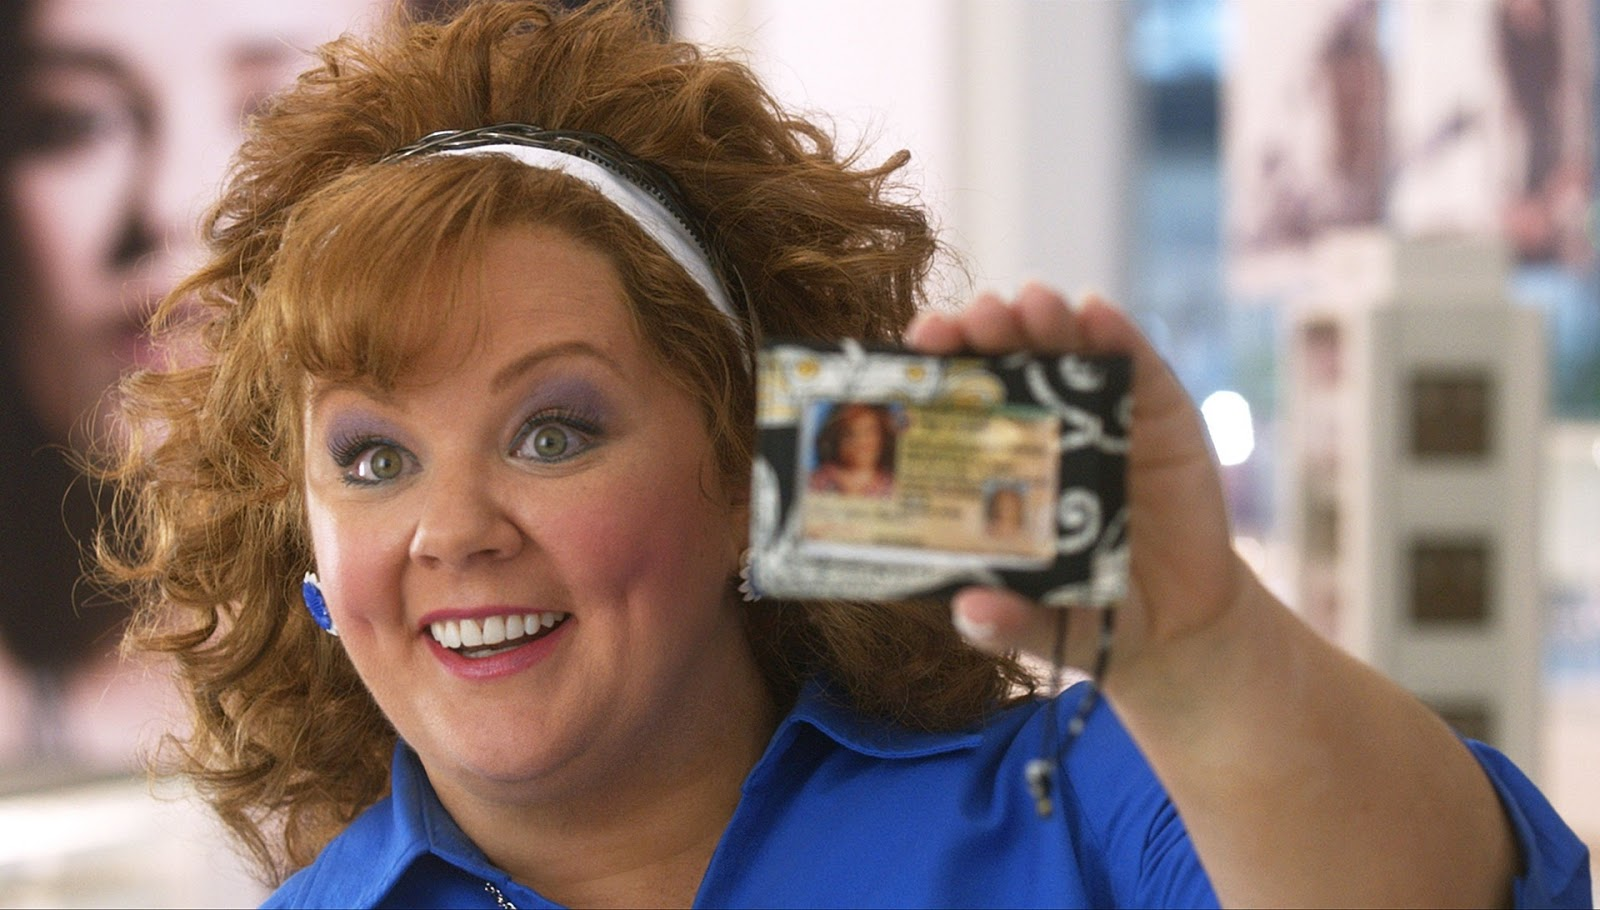 Identity Thief (2013) | Movies Subtitles